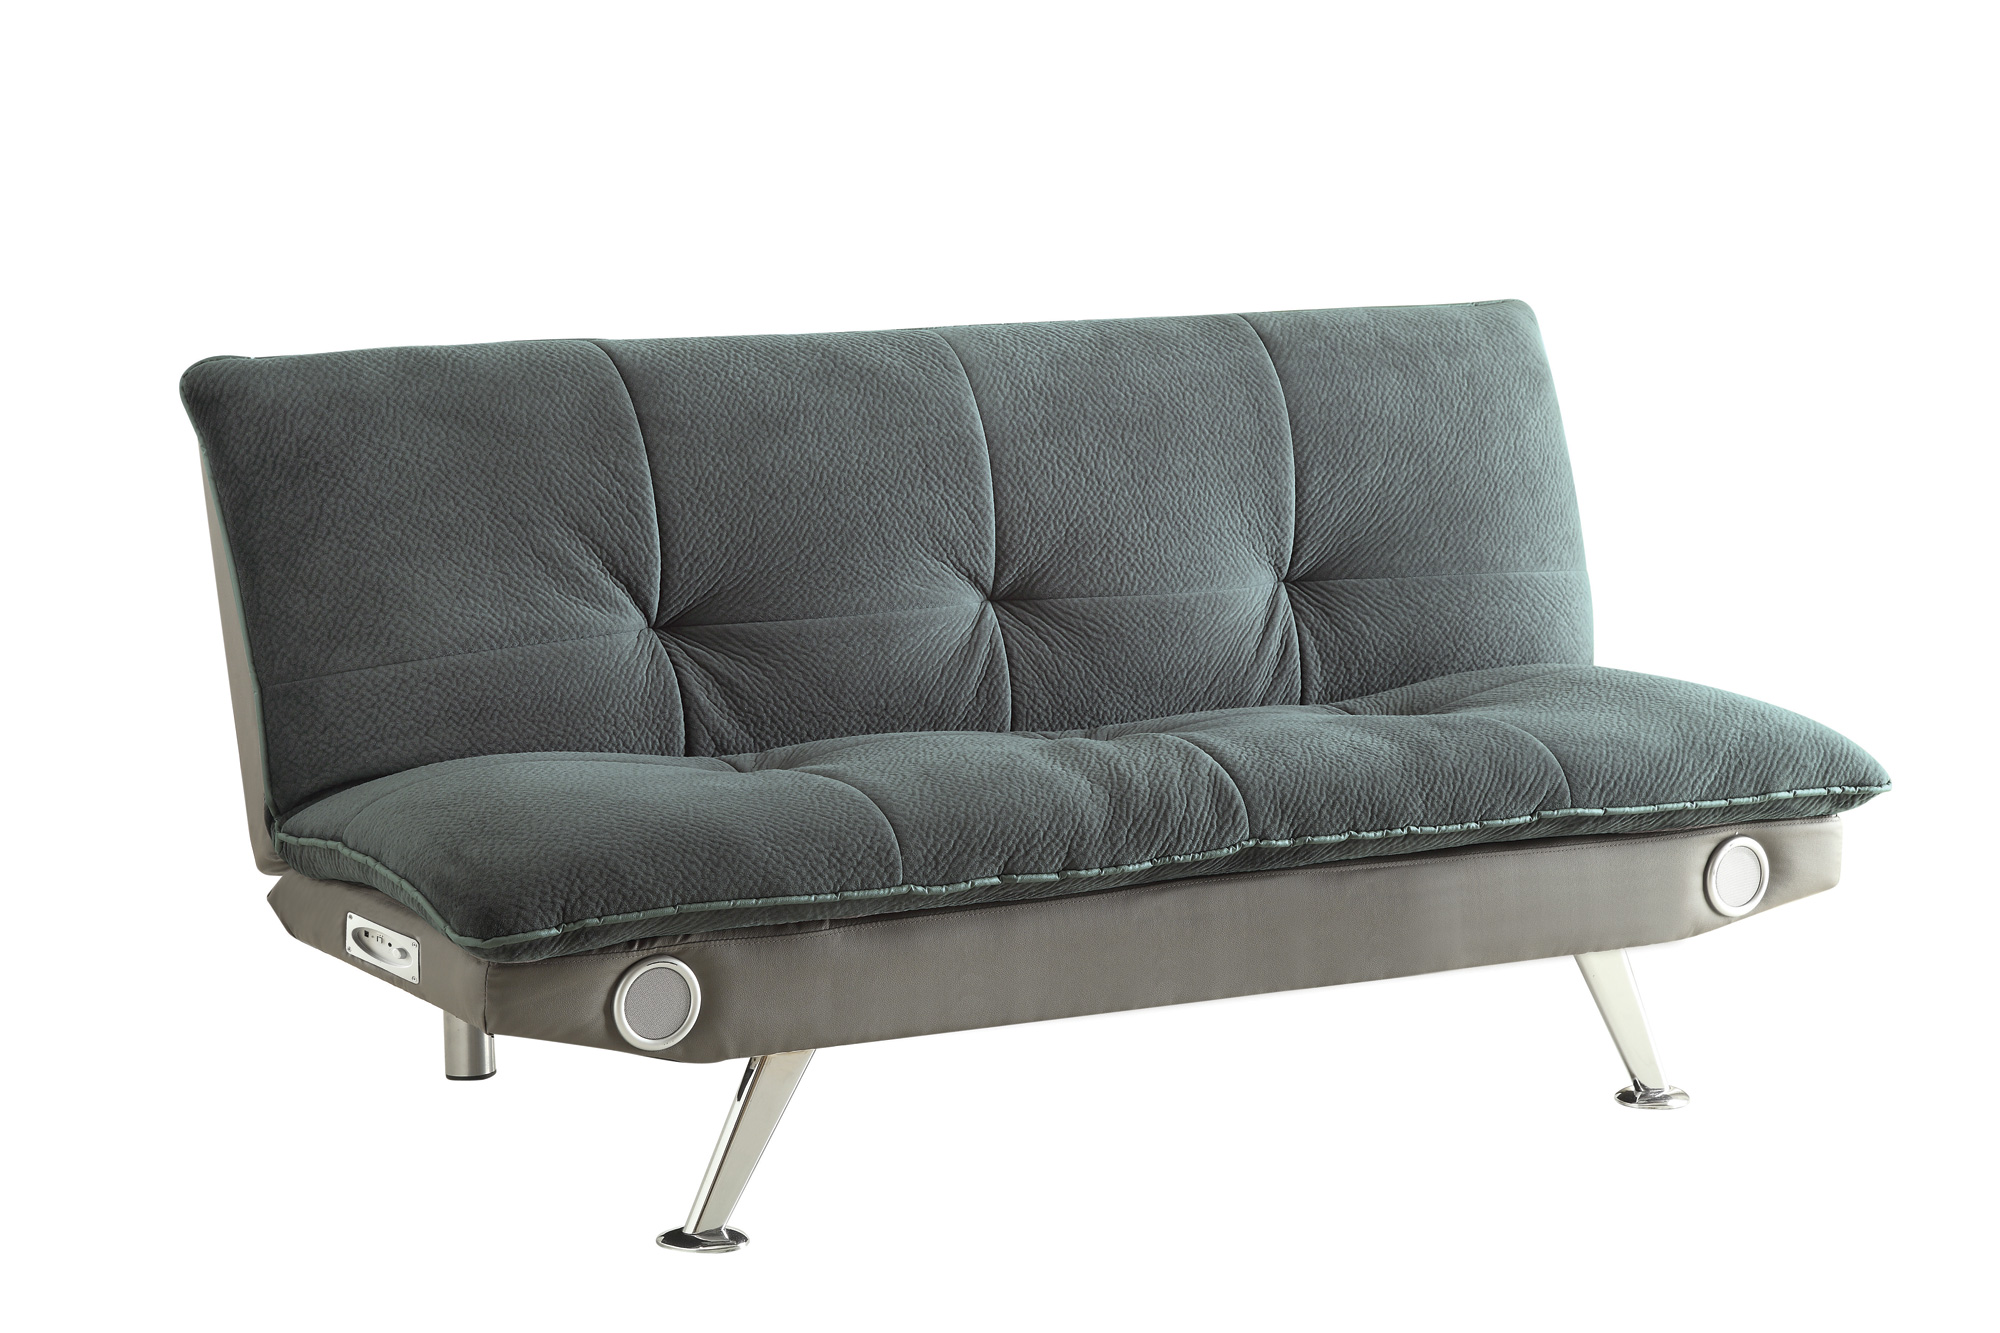 Wondrous Coaster Furniture Grey Faux Leather Sofa Bed Machost Co Dining Chair Design Ideas Machostcouk